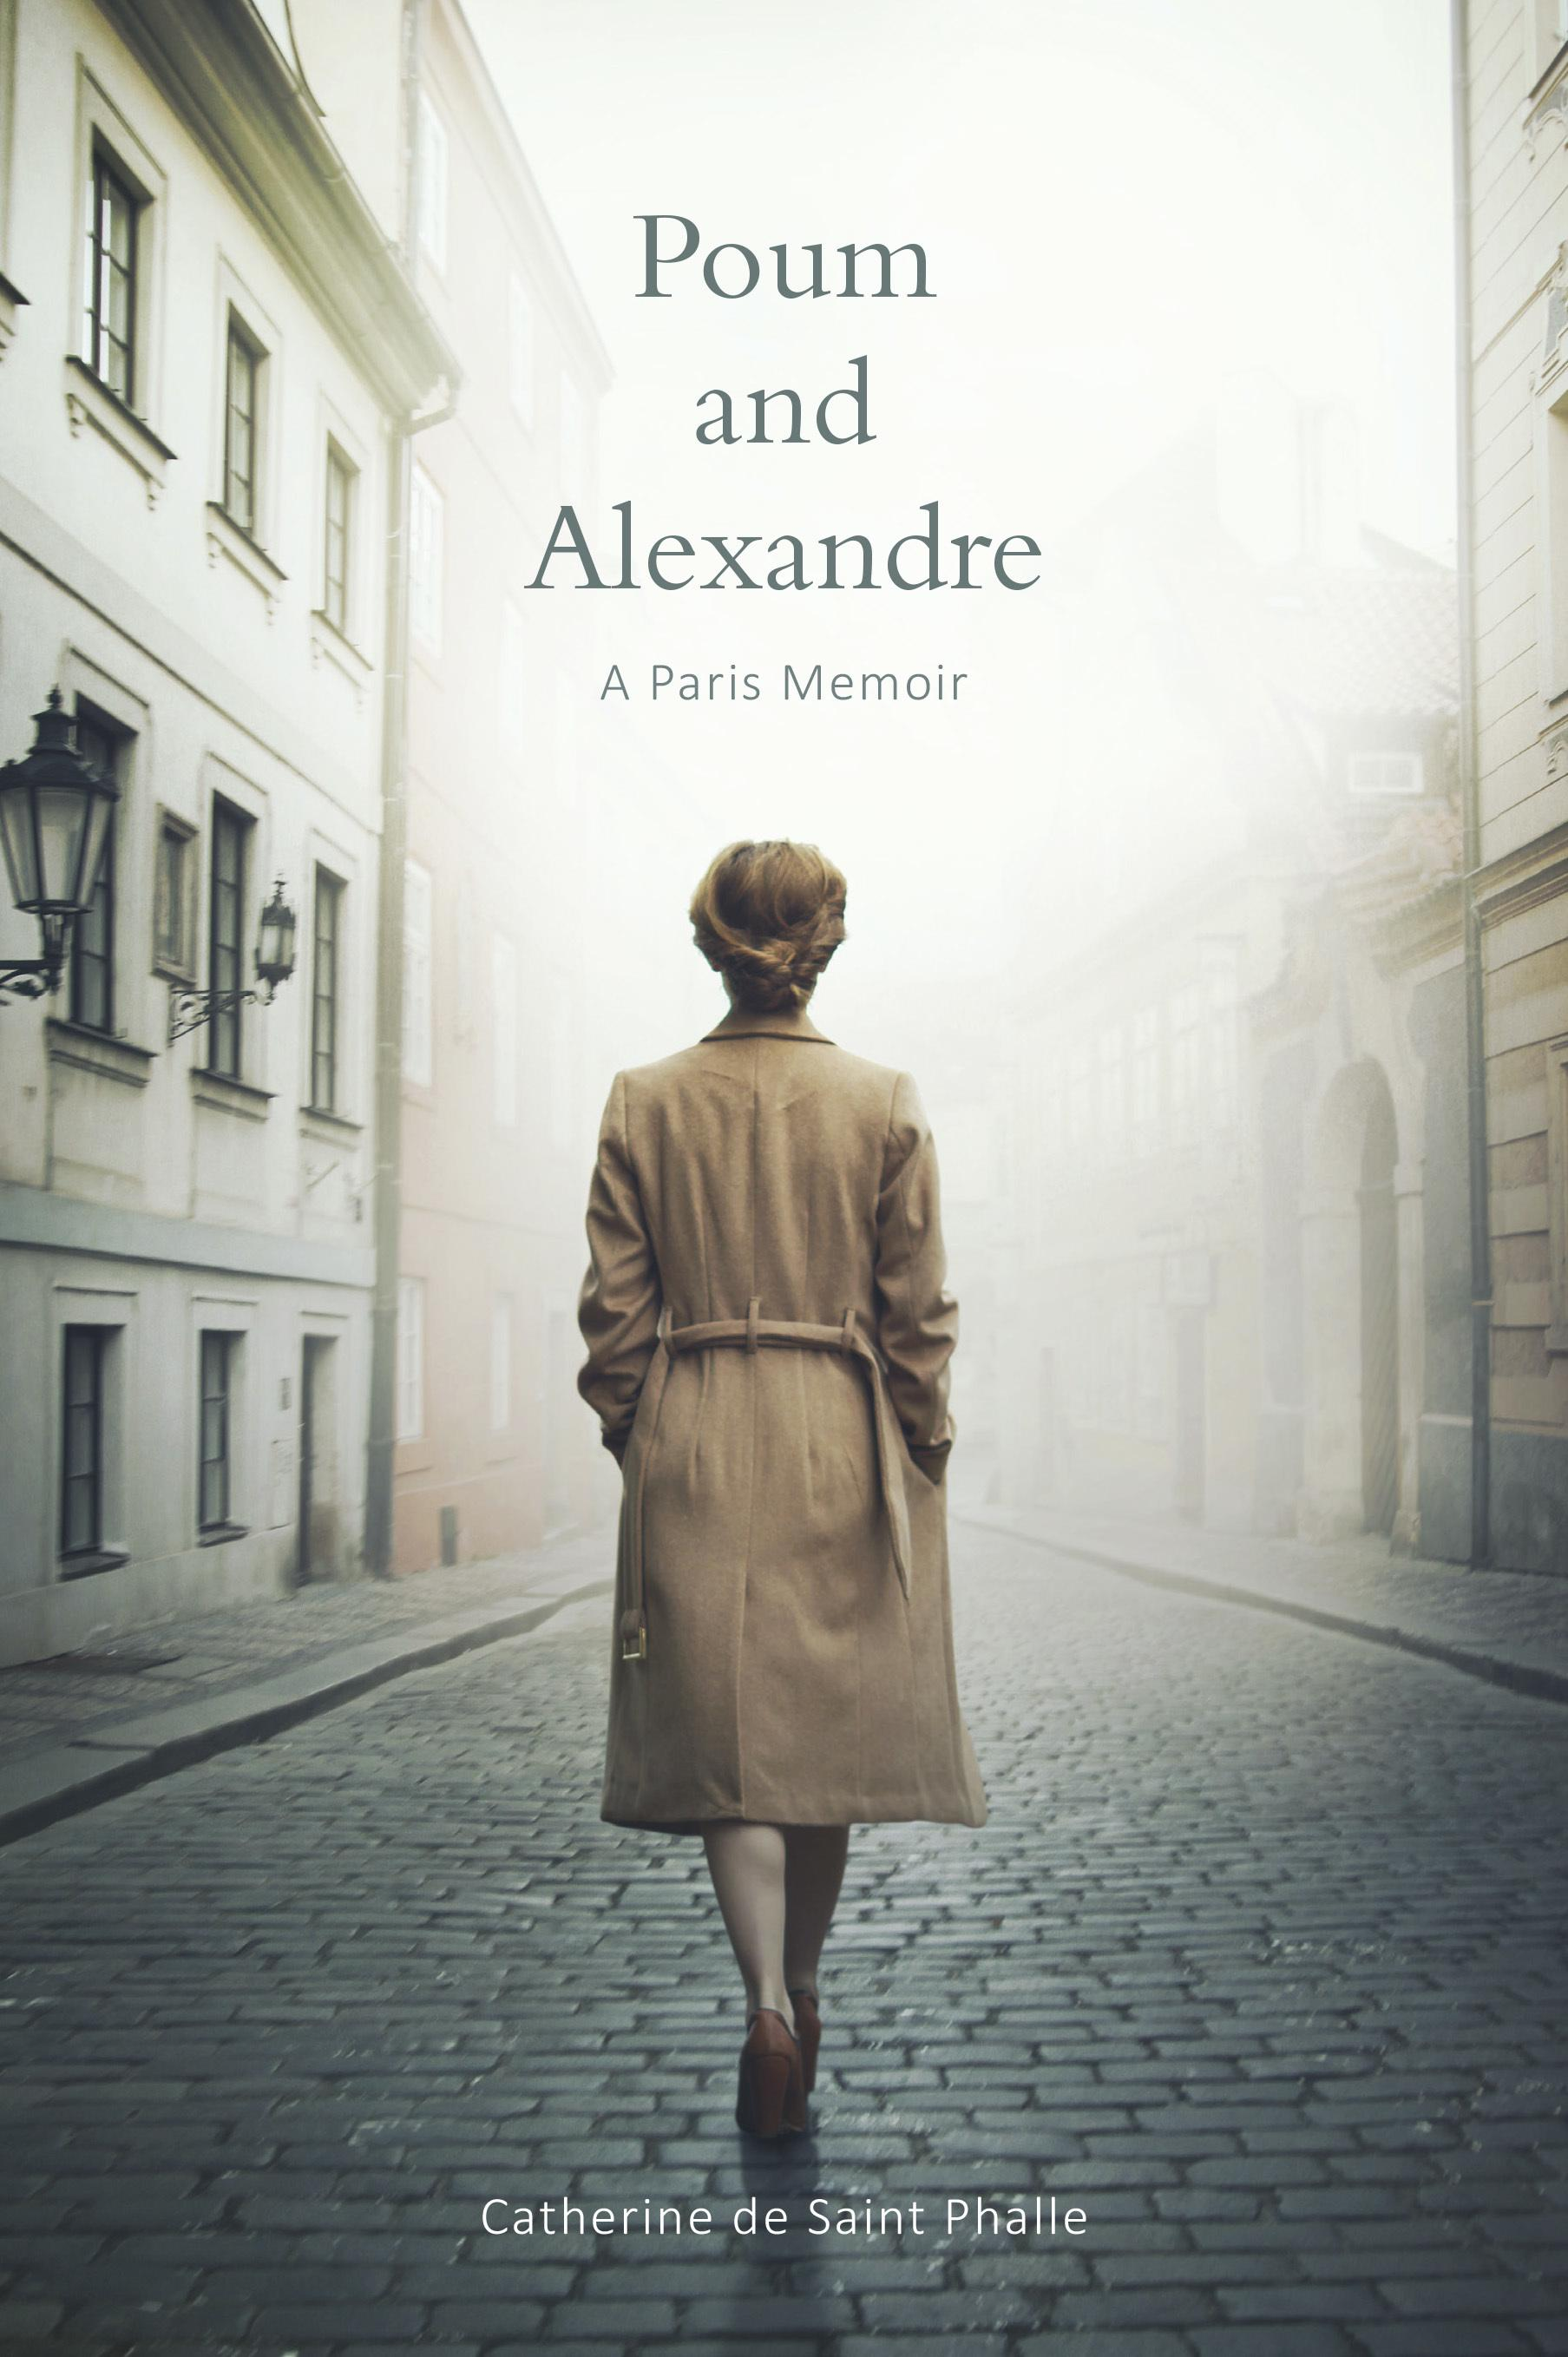 Poum and Alexandre: A Paris Memoir